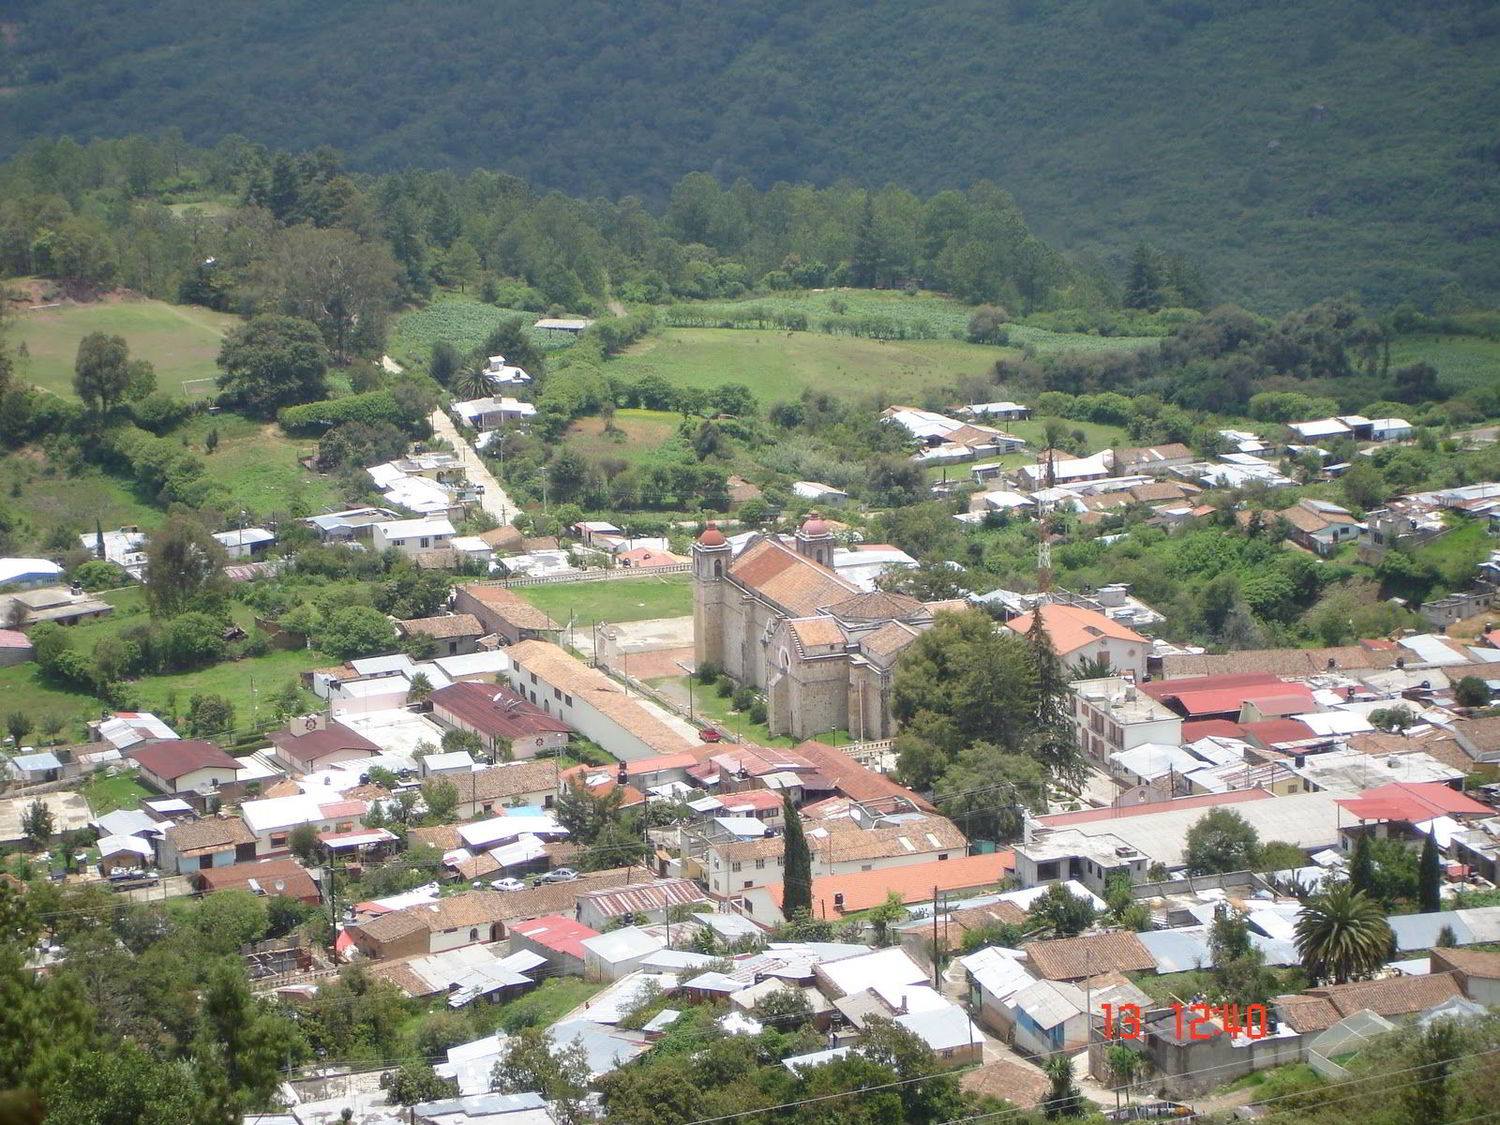 TOUR TO THE MAGIC TOWN OF CAPULALPAM. Â¡Un spiritual esperience!